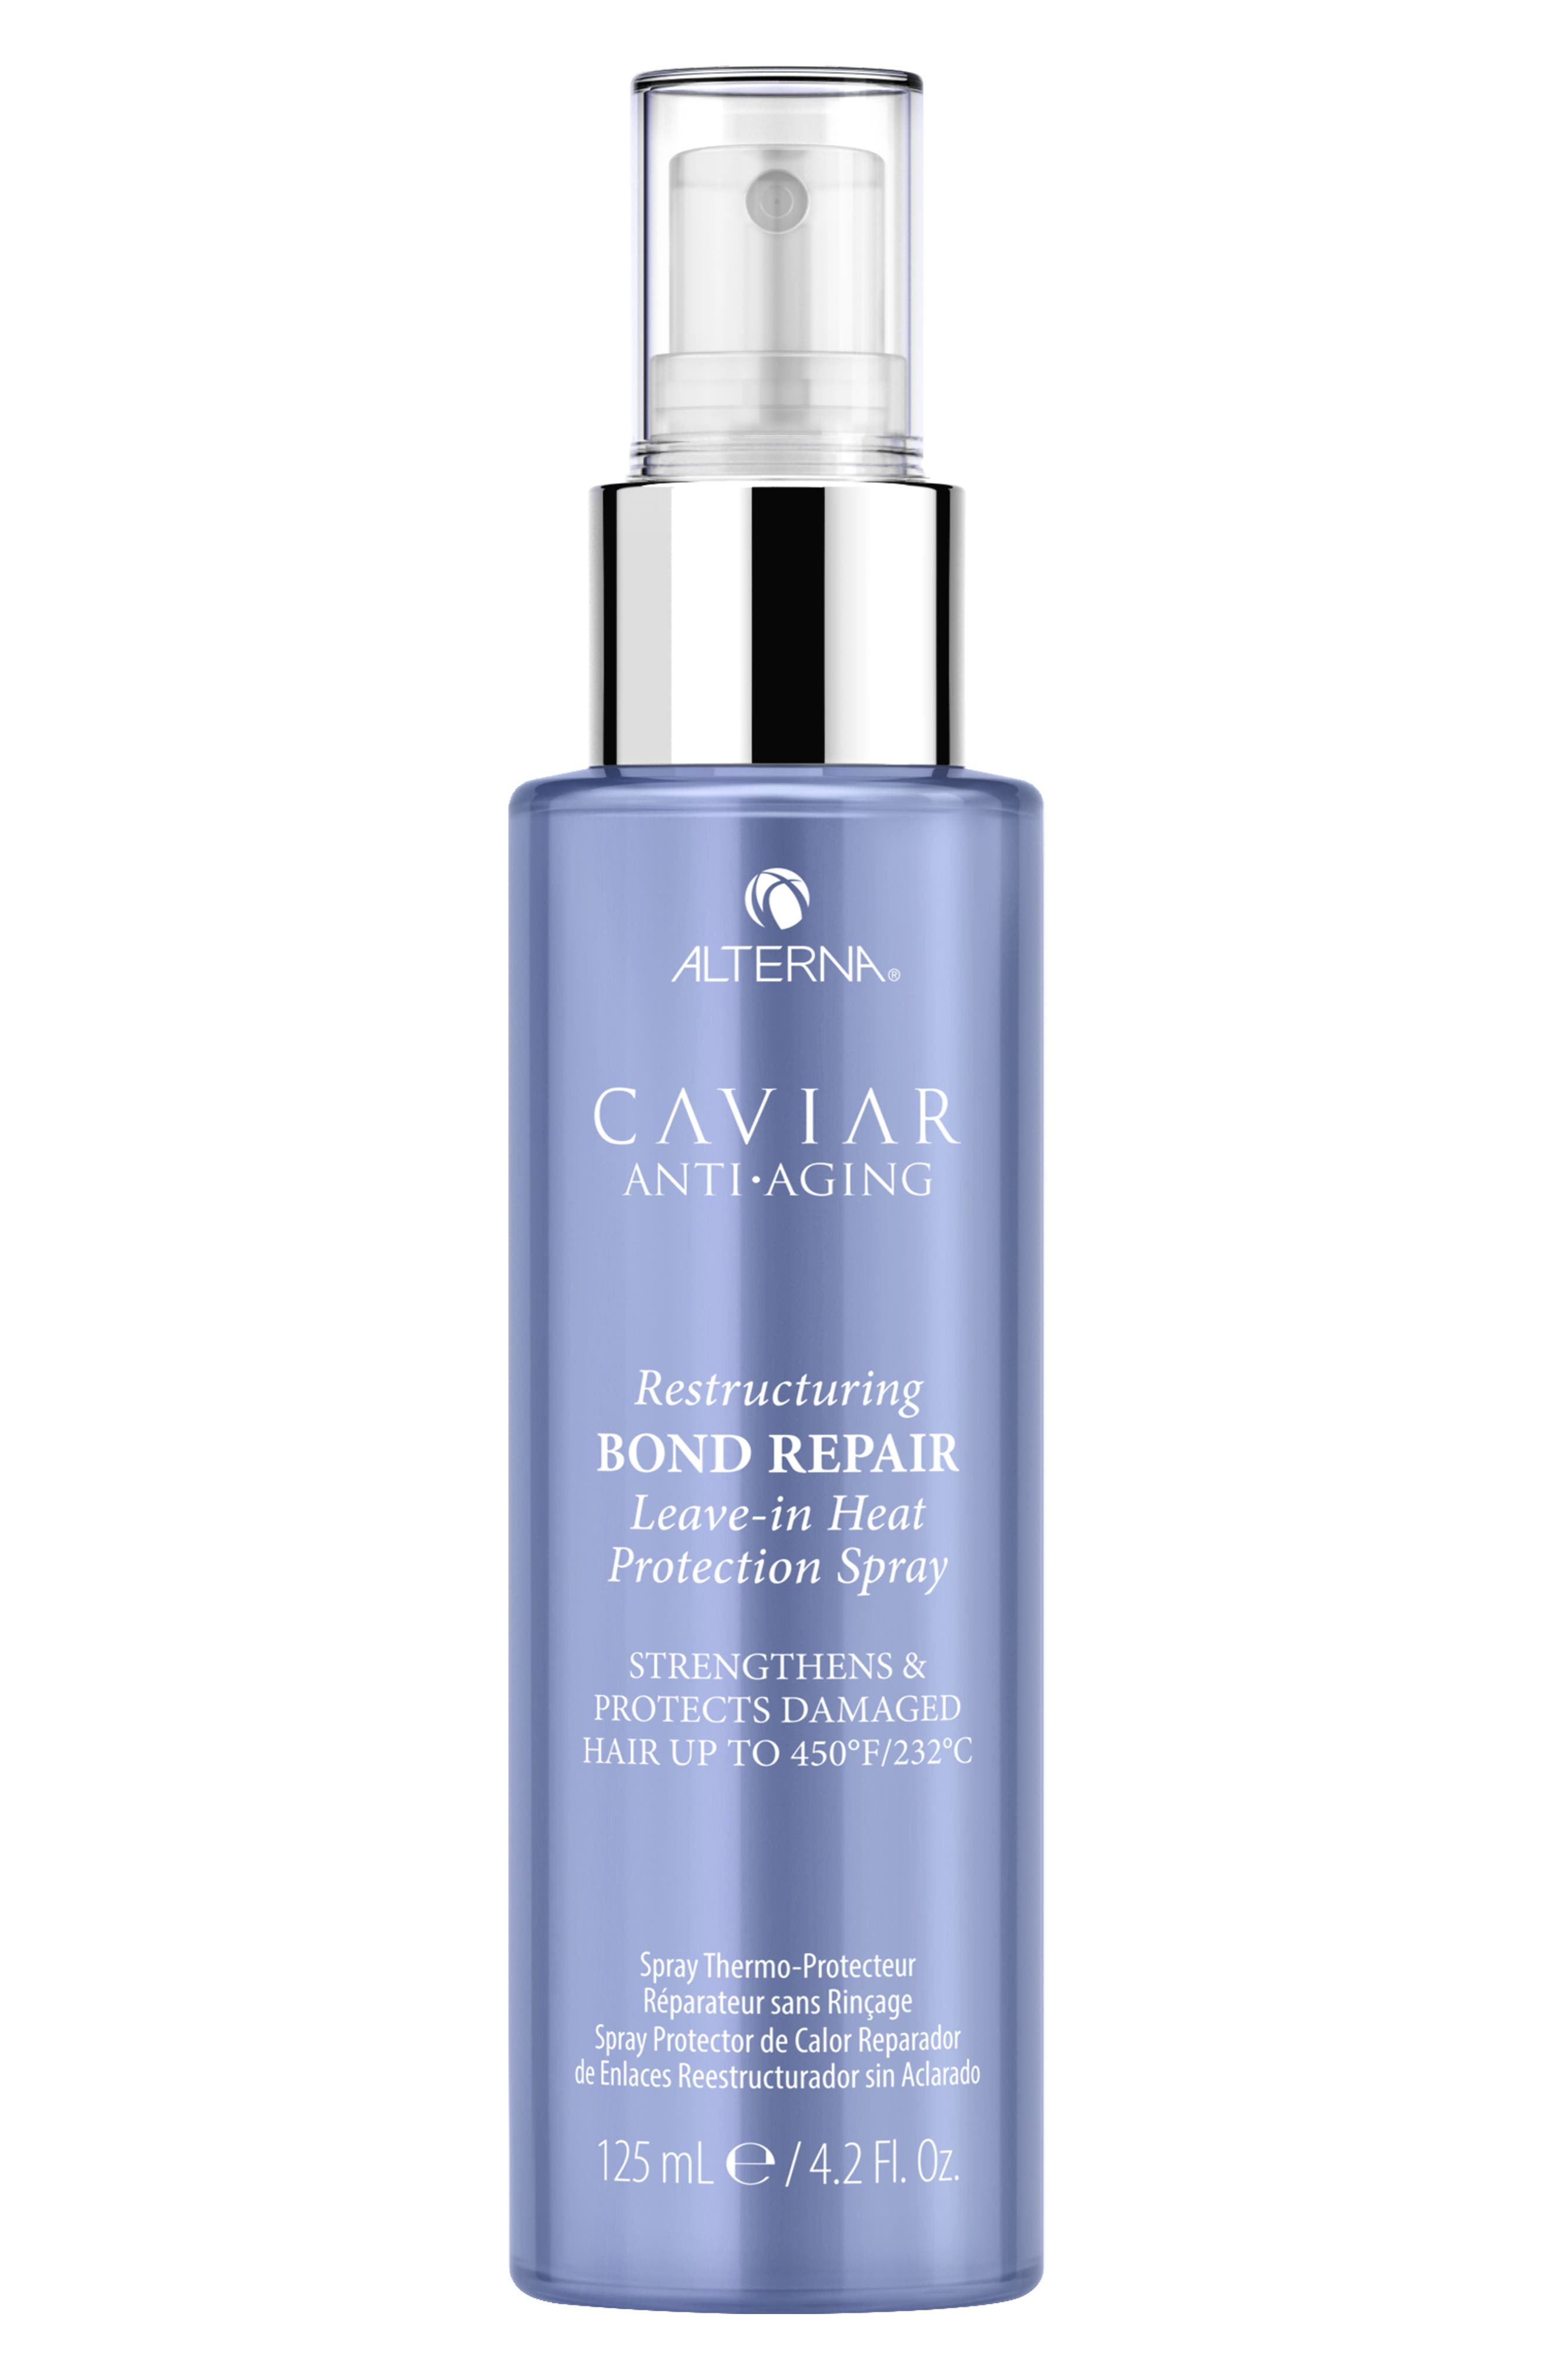 Caviar Anti-Aging Restructuring Bond Repair Leave-in Heat Protection Spray,                             Main thumbnail 1, color,                             NO COLOR